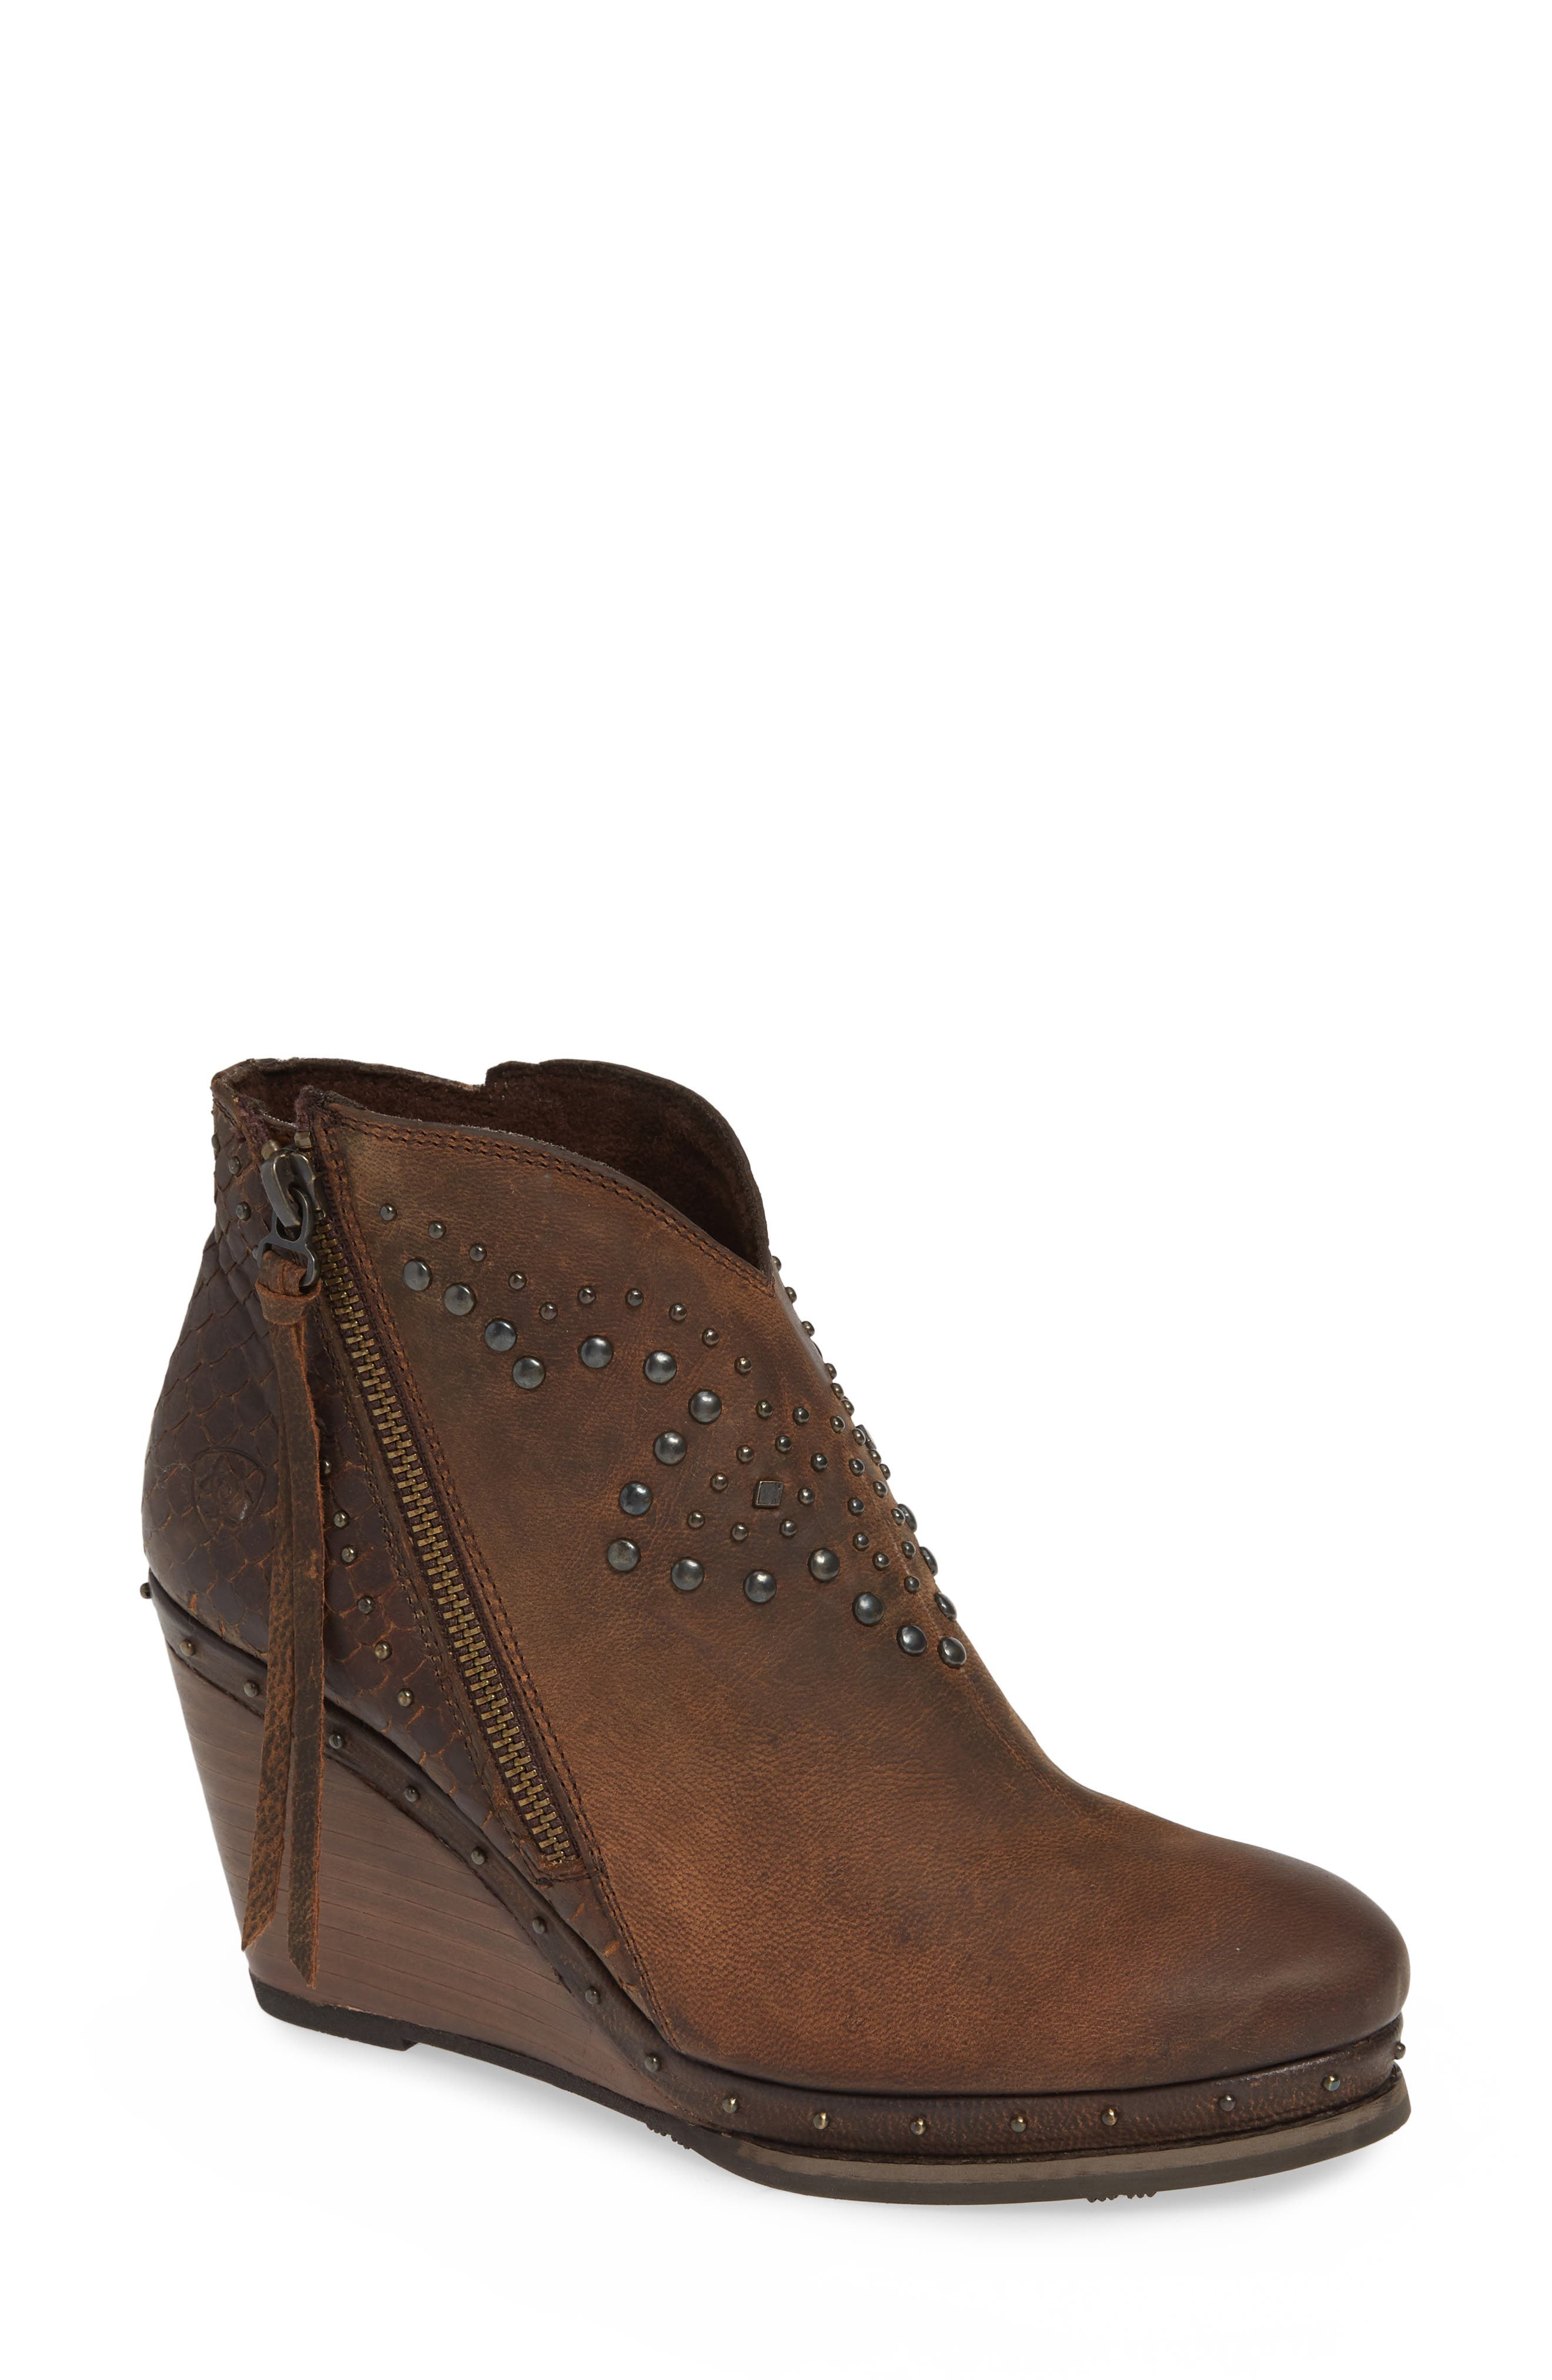 Ariat Stax Studded Wedge Bootie- Brown